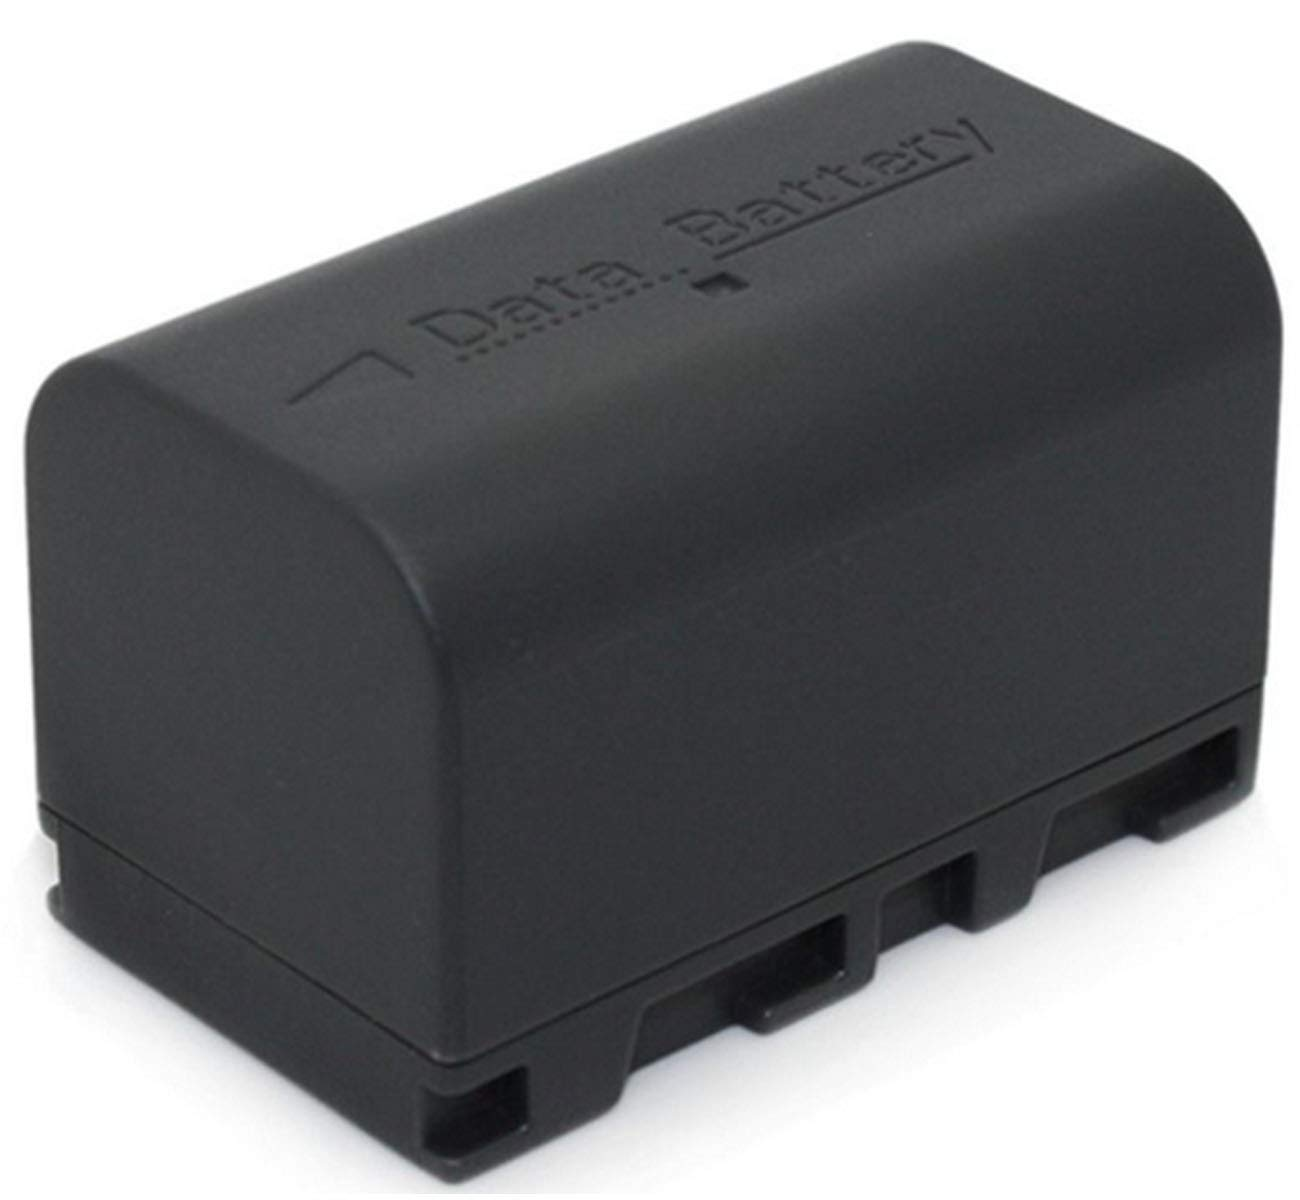 Charger for JVC Everio GZ-MS120AUS GZ-MS120BUS GZ-MS120RUS Camcorder Battery